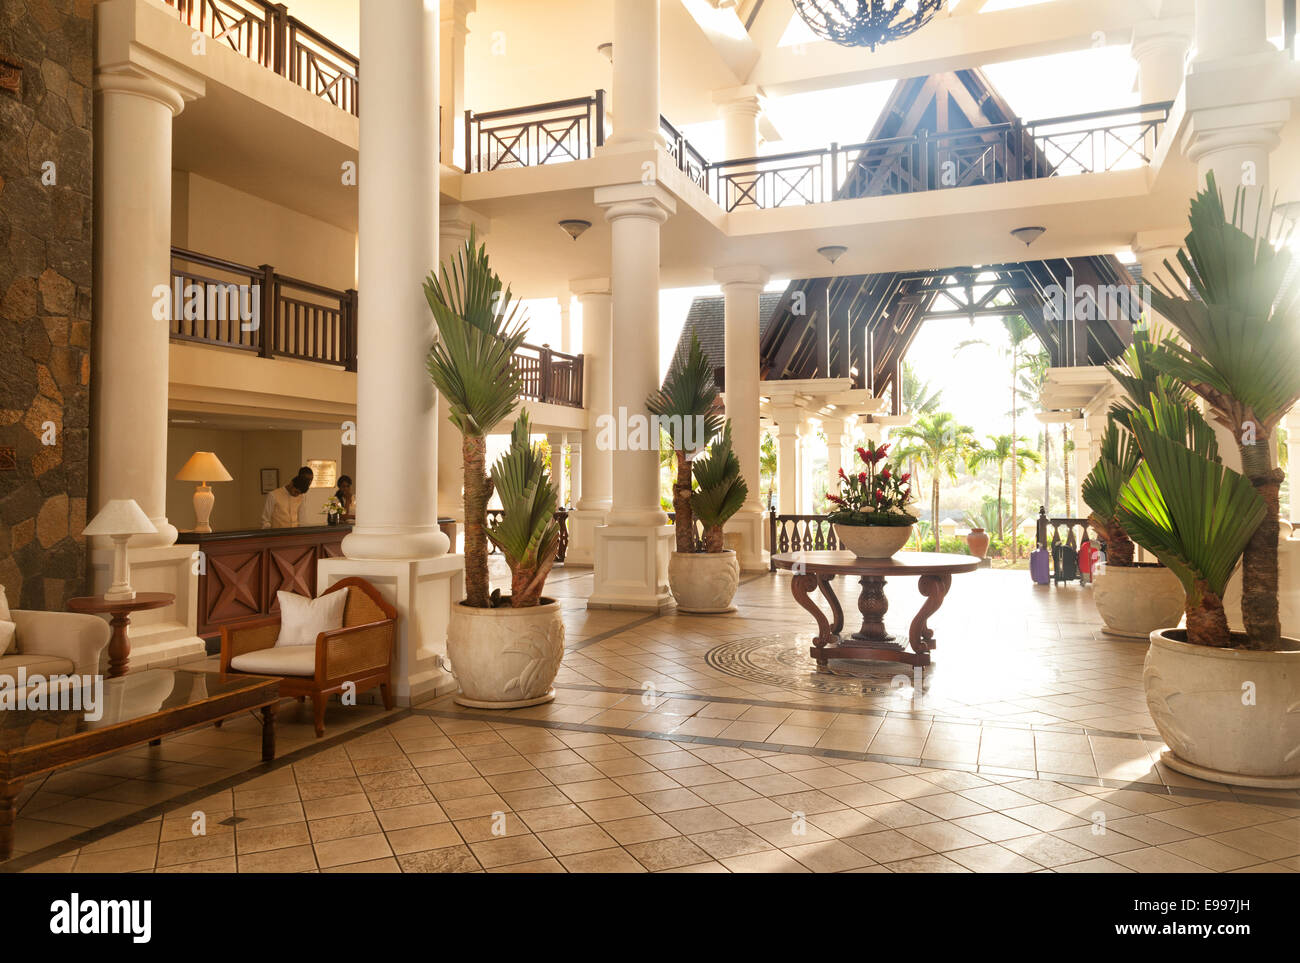 The lobby of the luxury  Residence Hotel, Belle Mare, Mauritius, Africa Stock Photo